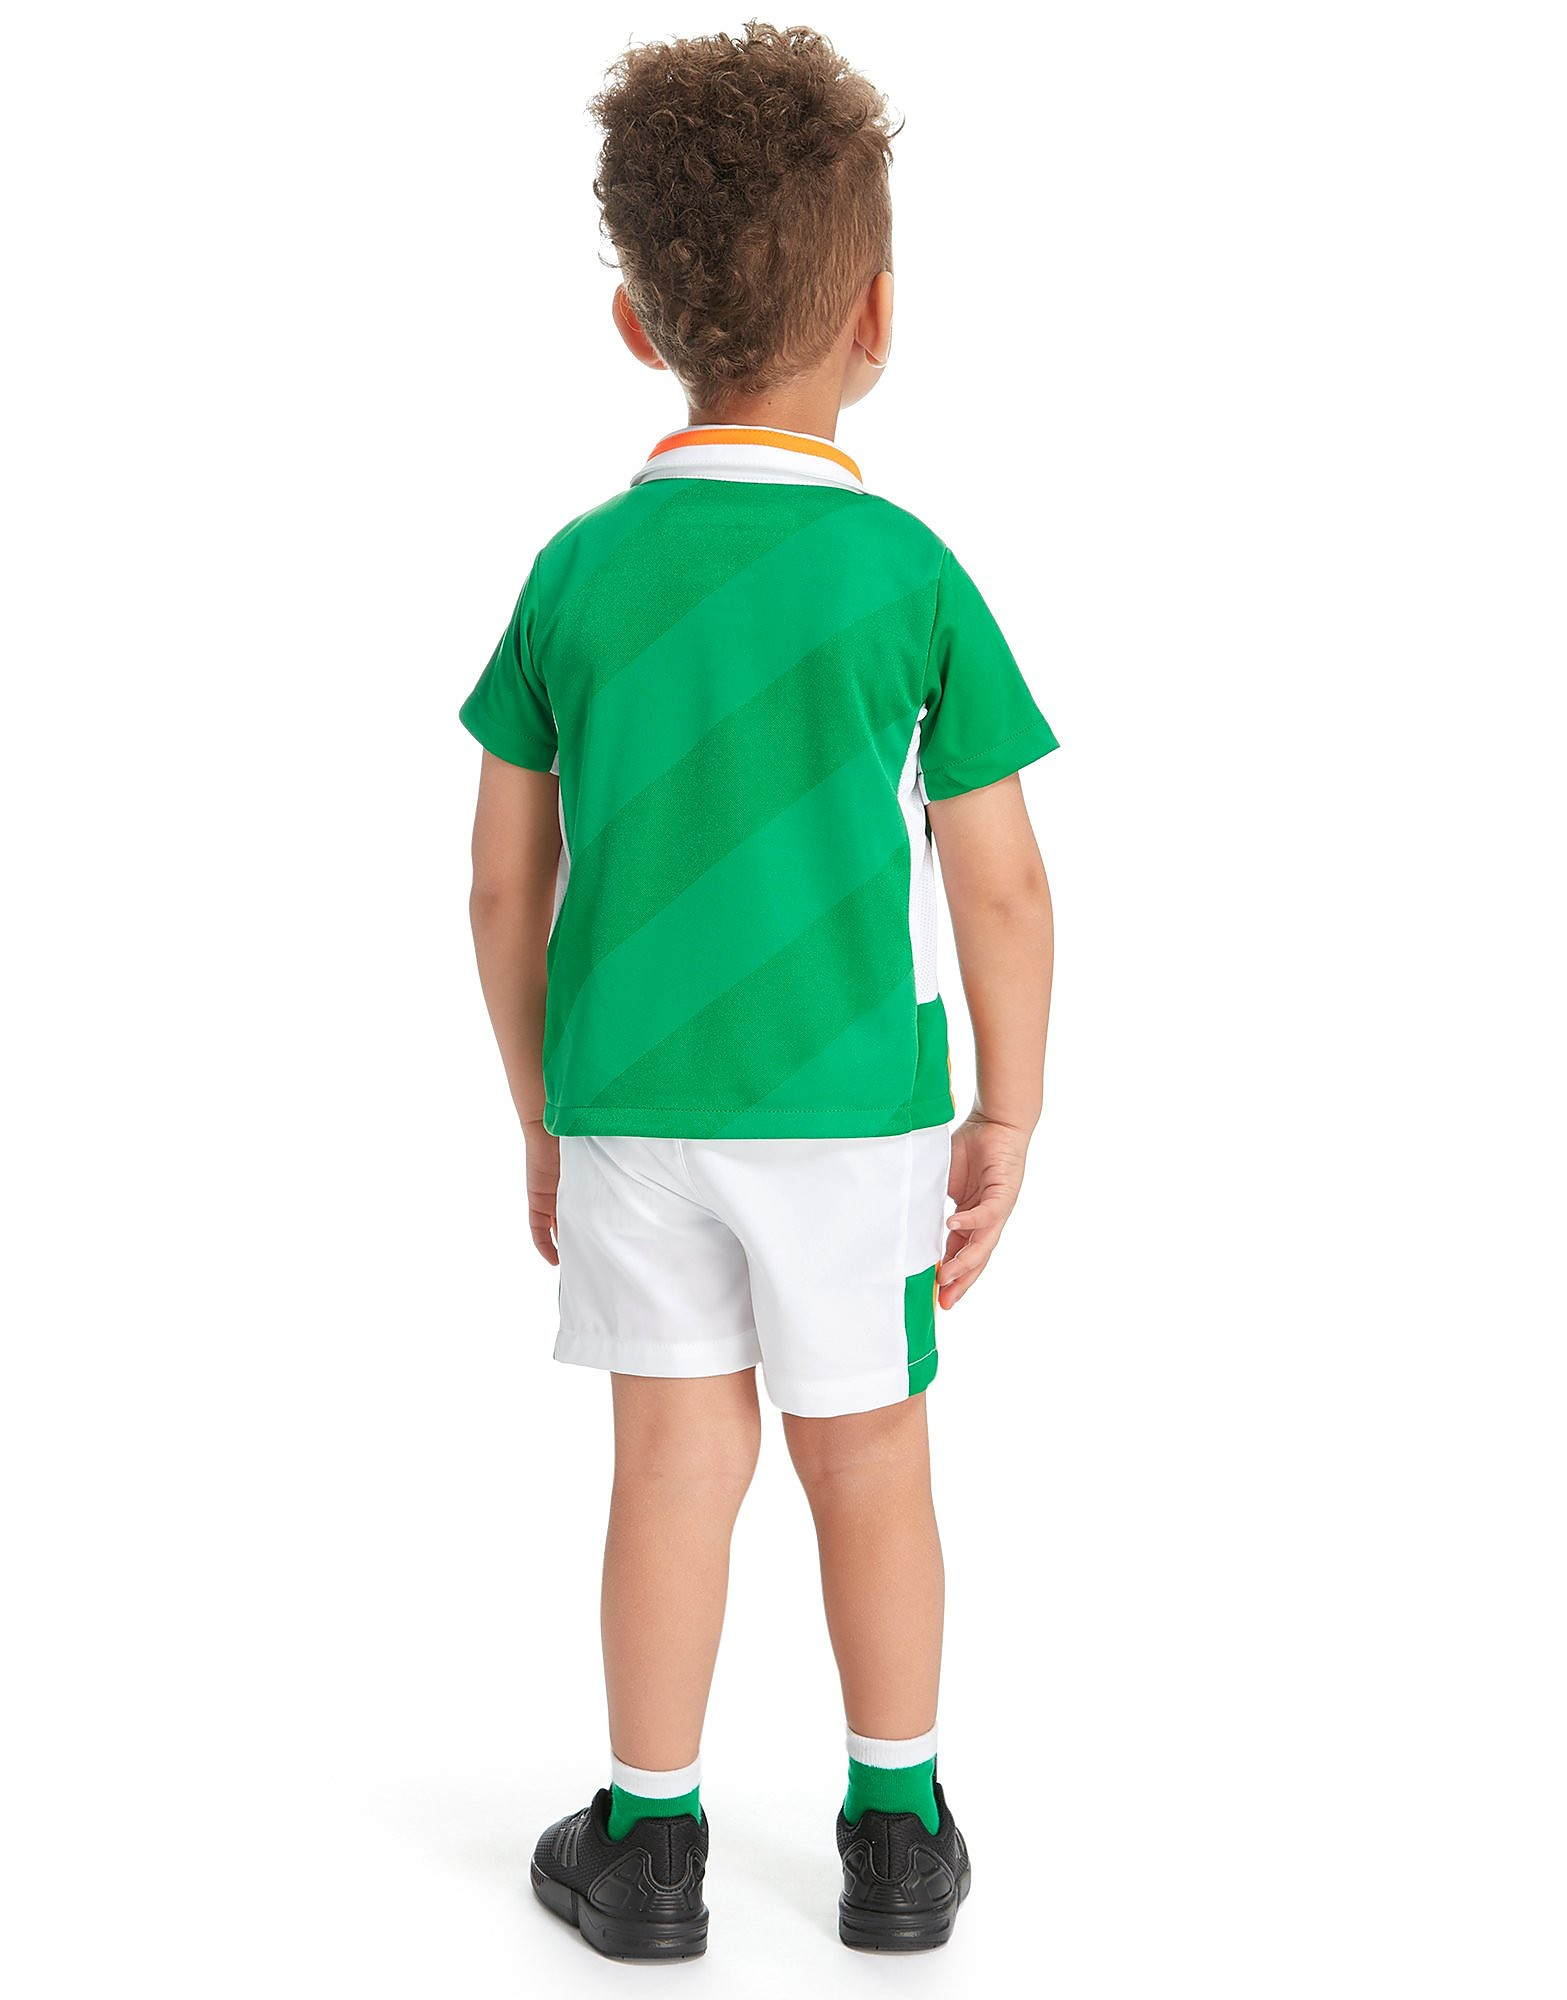 Umbro Republic of Ireland 2016 Thuistenue voor baby's